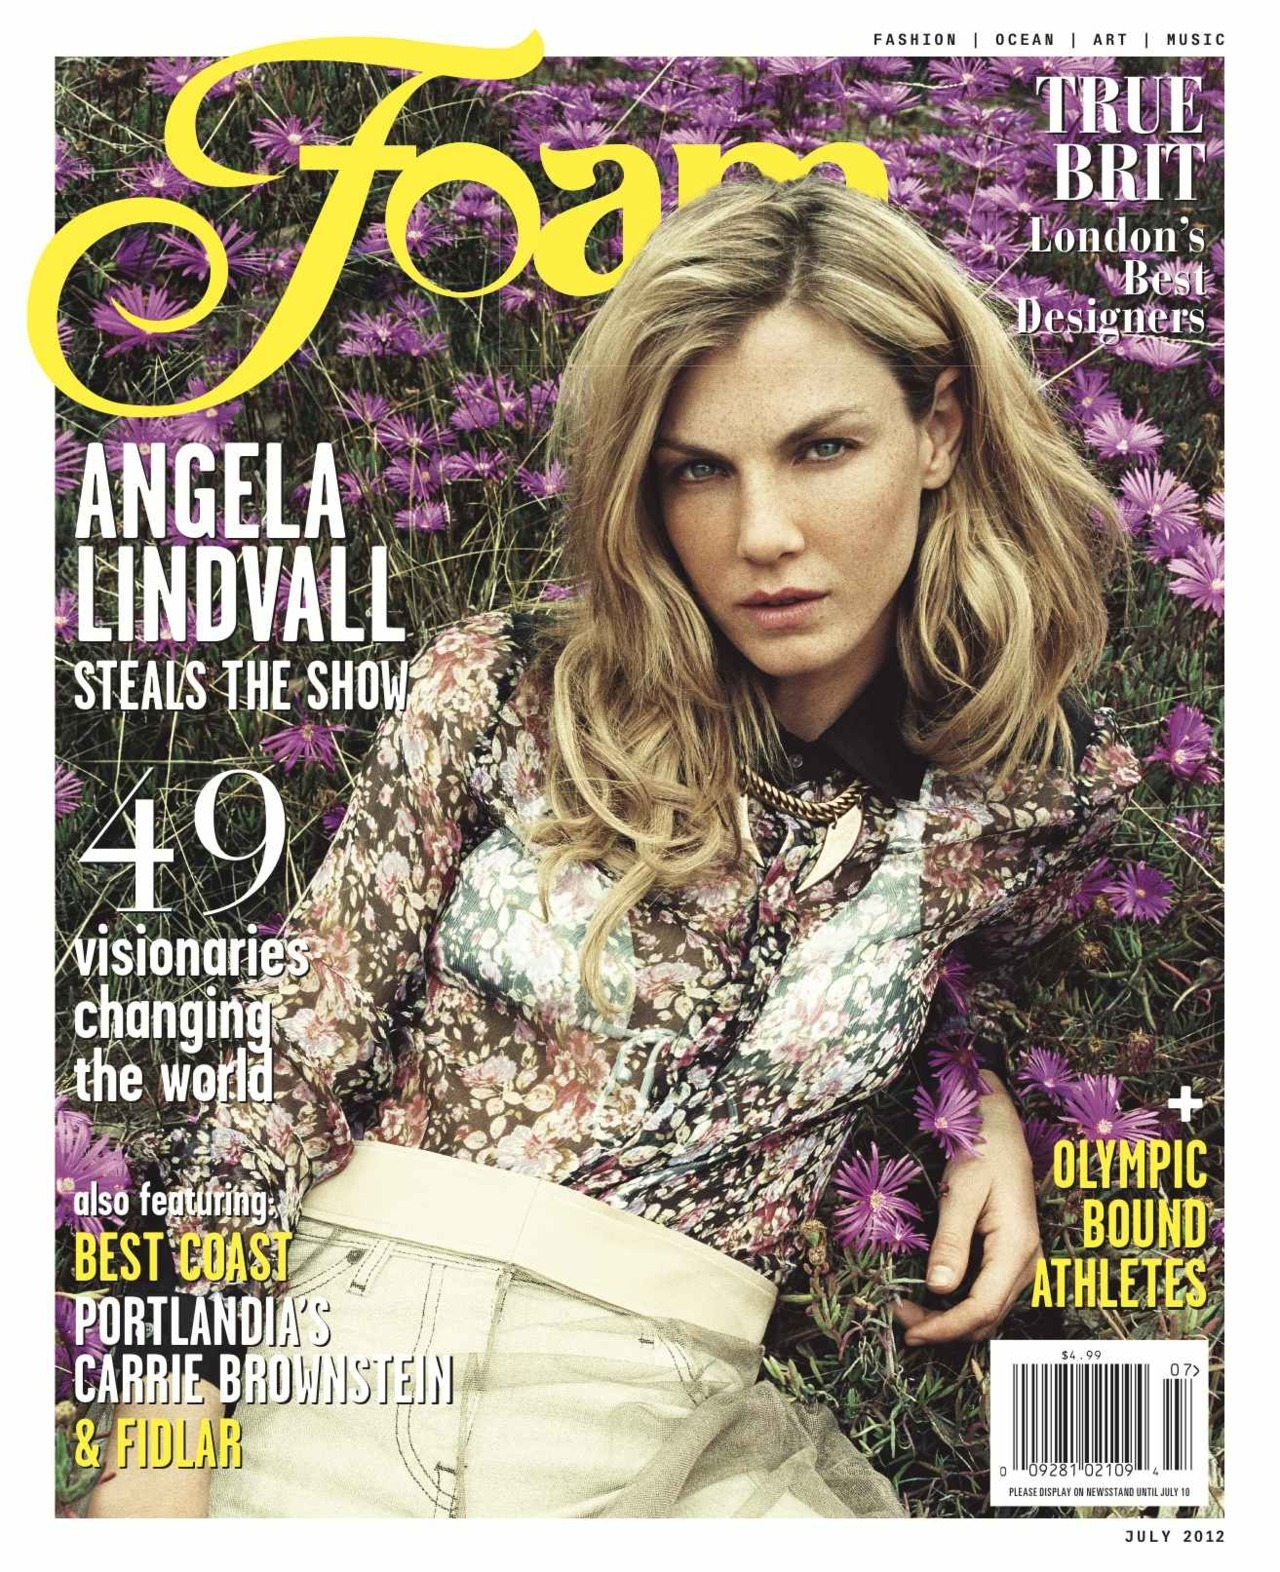 check out the angela lindvall cover story i styled with photographer hilary walsh. so fun!